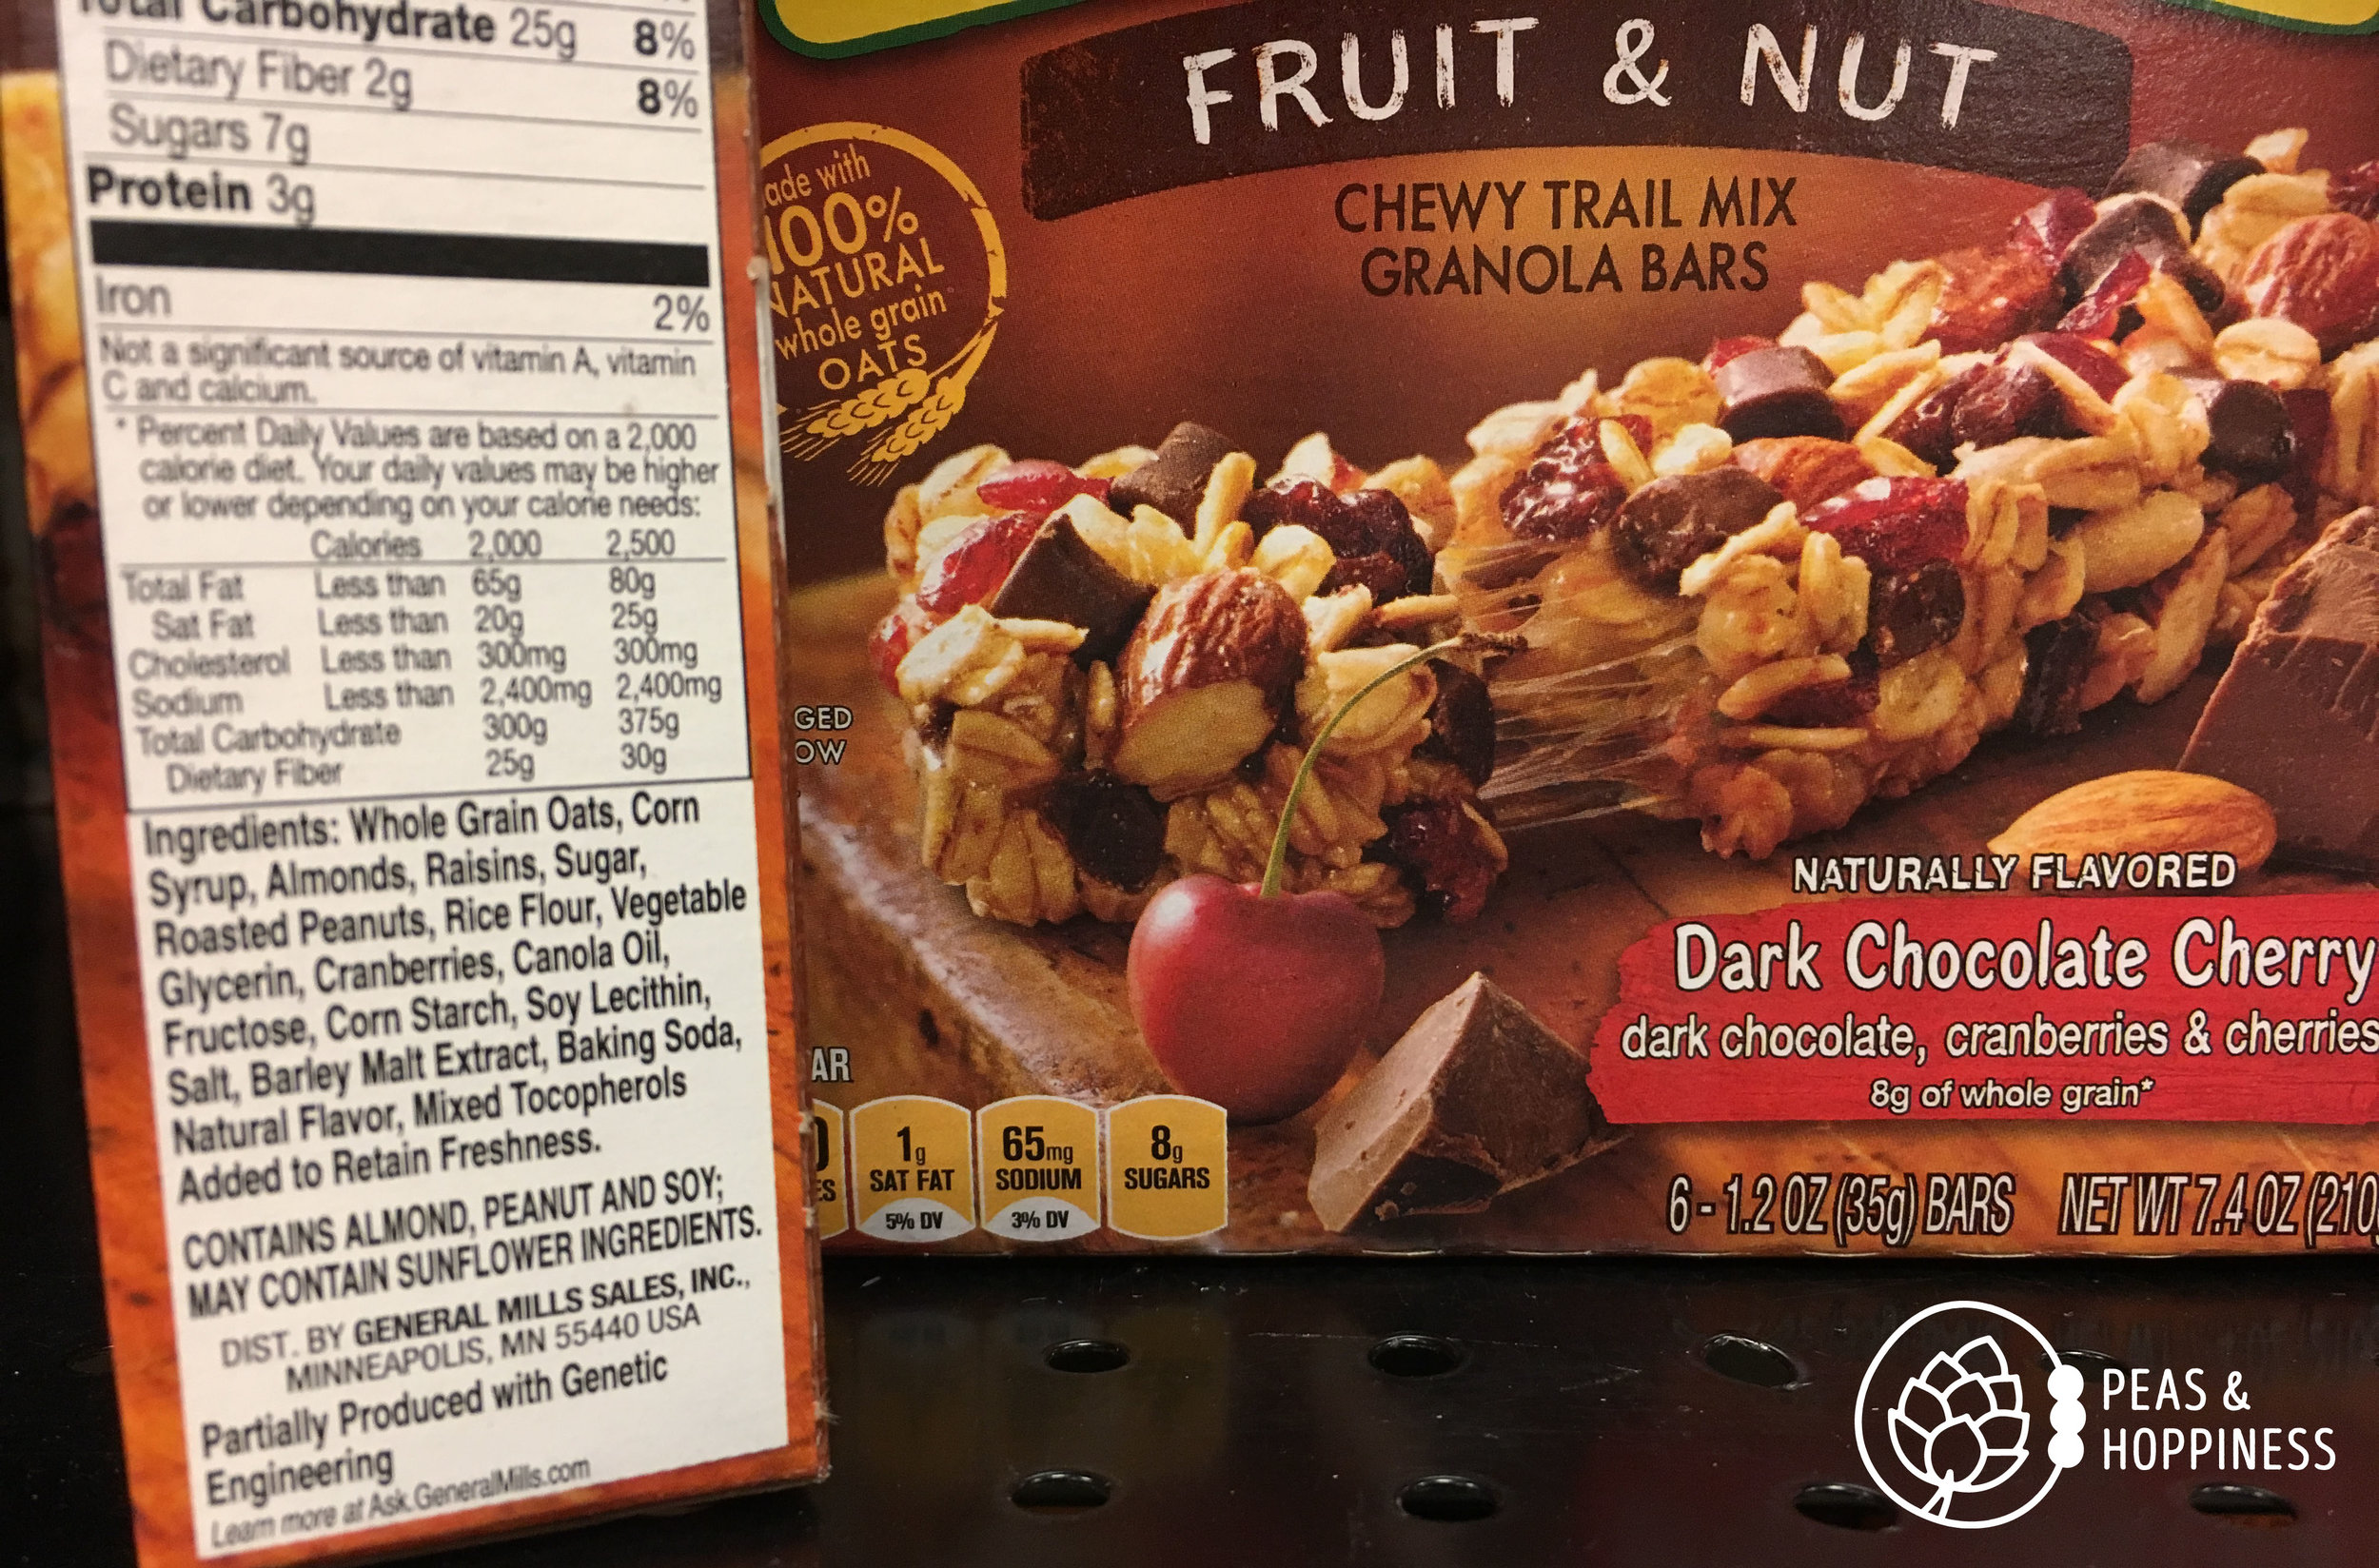 More expensive isn't always better. Sometimes the humble bars found amidst the crowd of Quaker Oats are as good as the ones in the health food aisle!